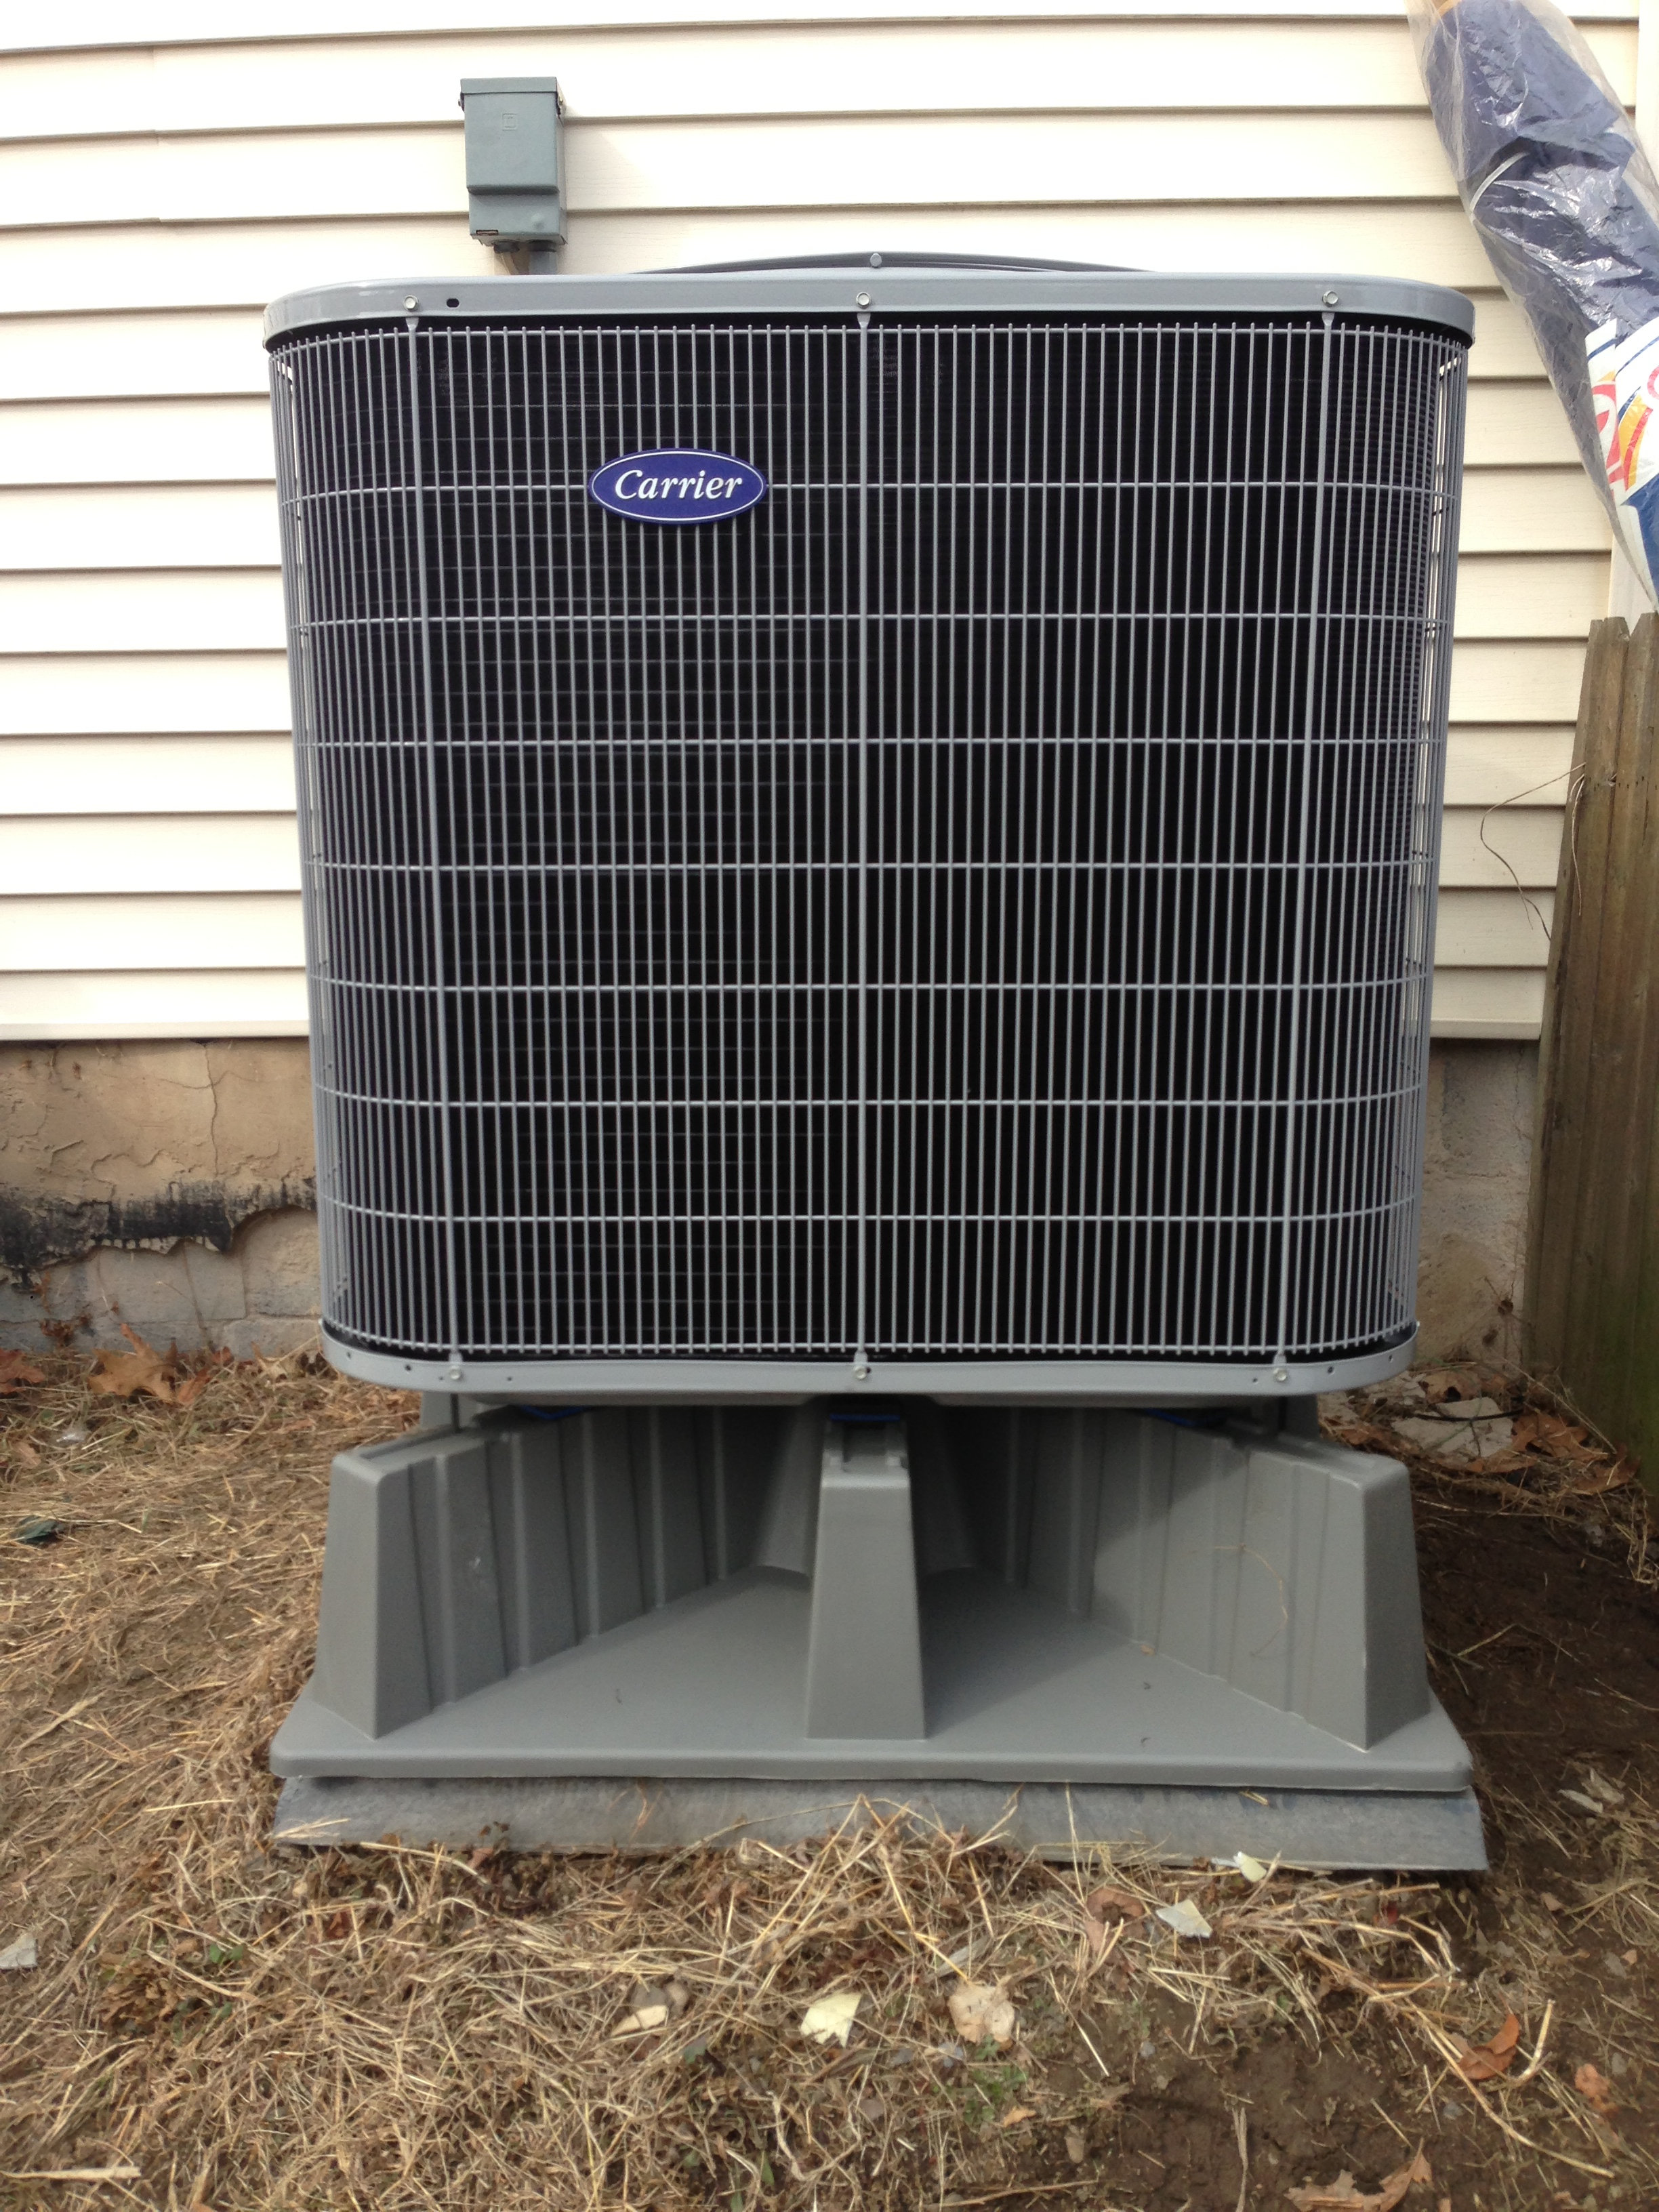 Residential Carrier Outdoor Heat Pump